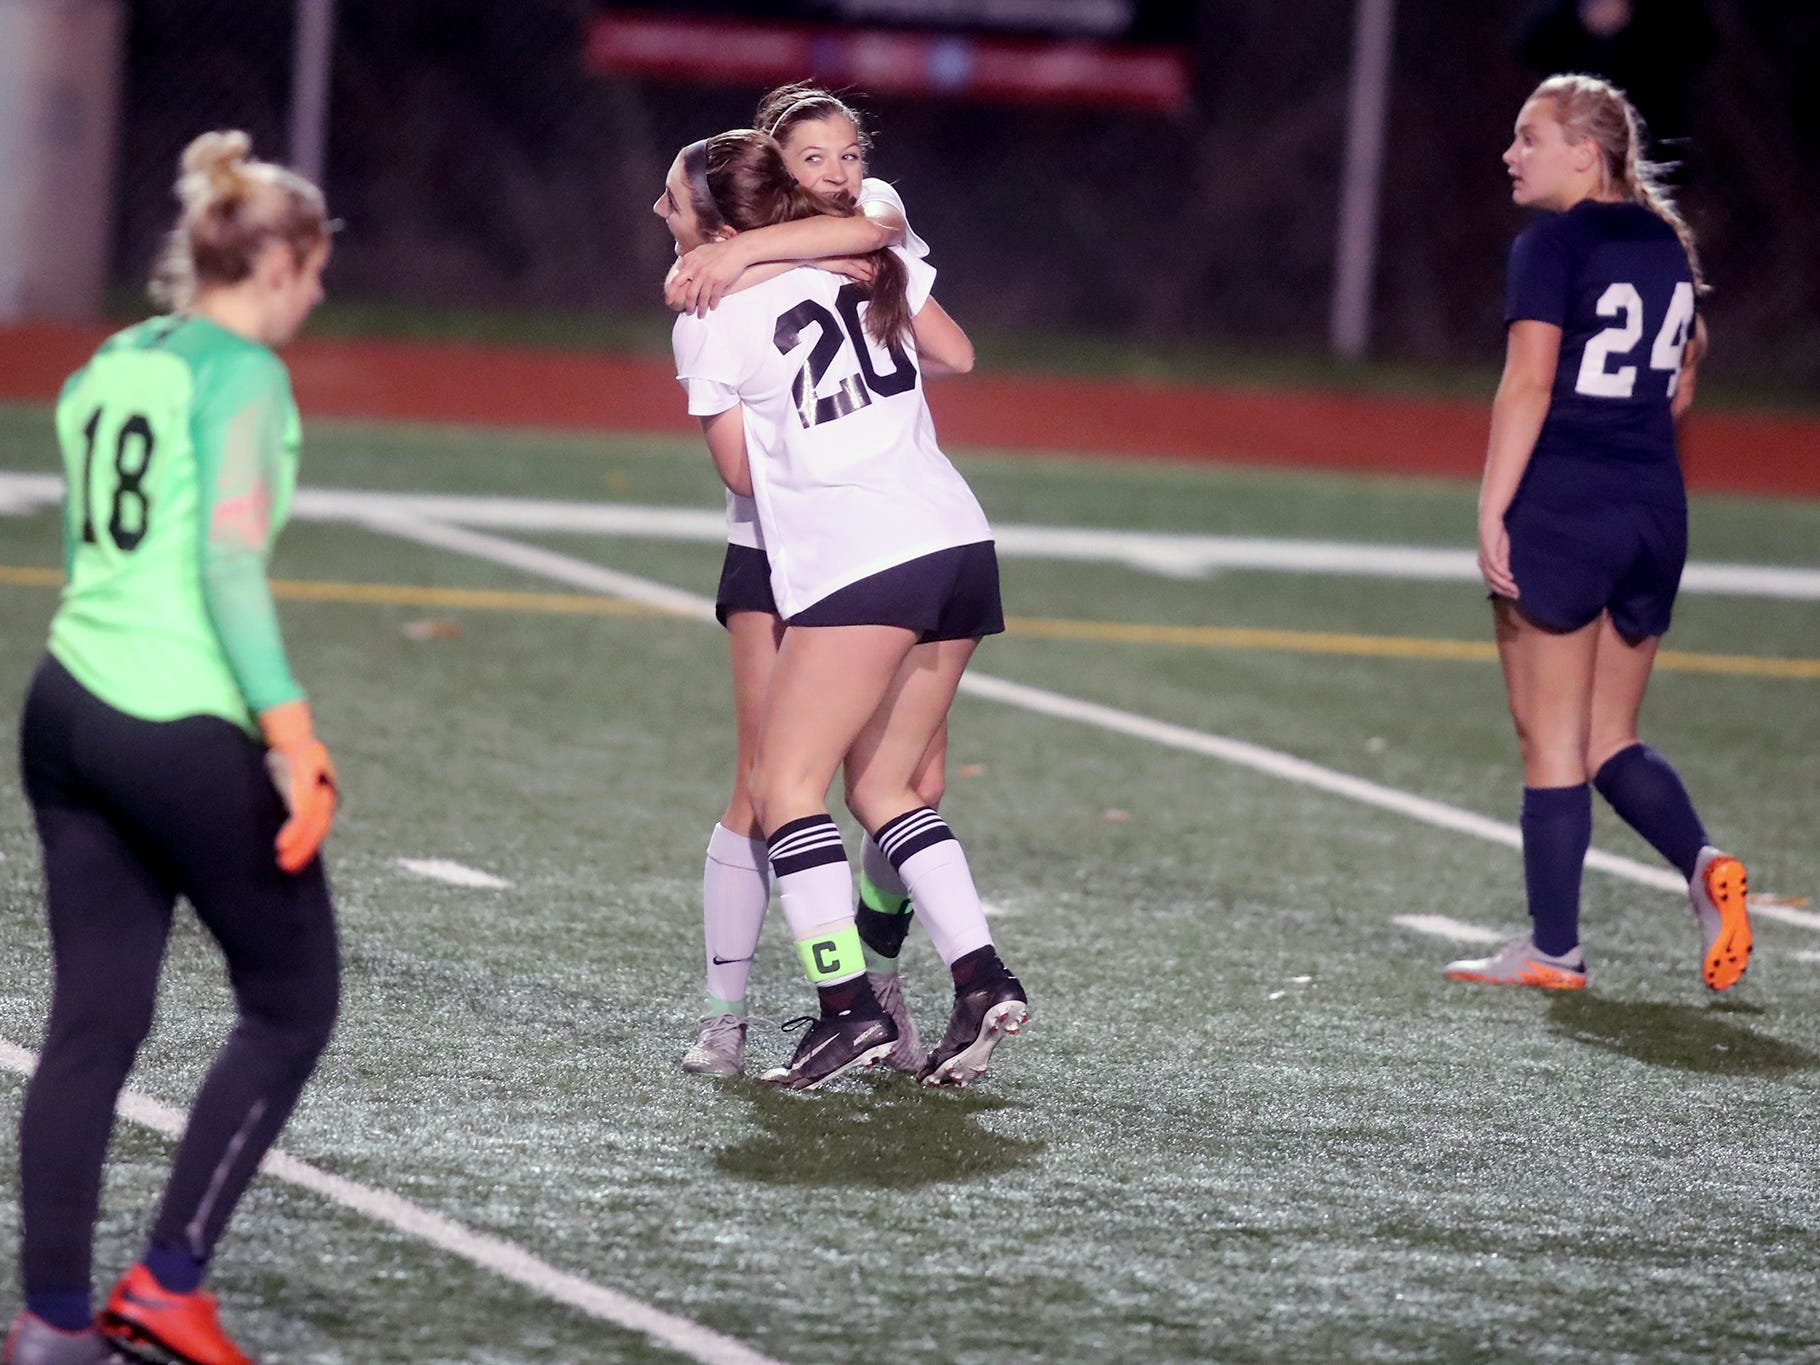 Klahowya lost to King's Way  in the 2018 Girls Soccer State Championship 1A semifinal game at Shoreline Stadium on Friday, November 16, 2018.Klahowya celebrates their first goal of the game to tie the score.